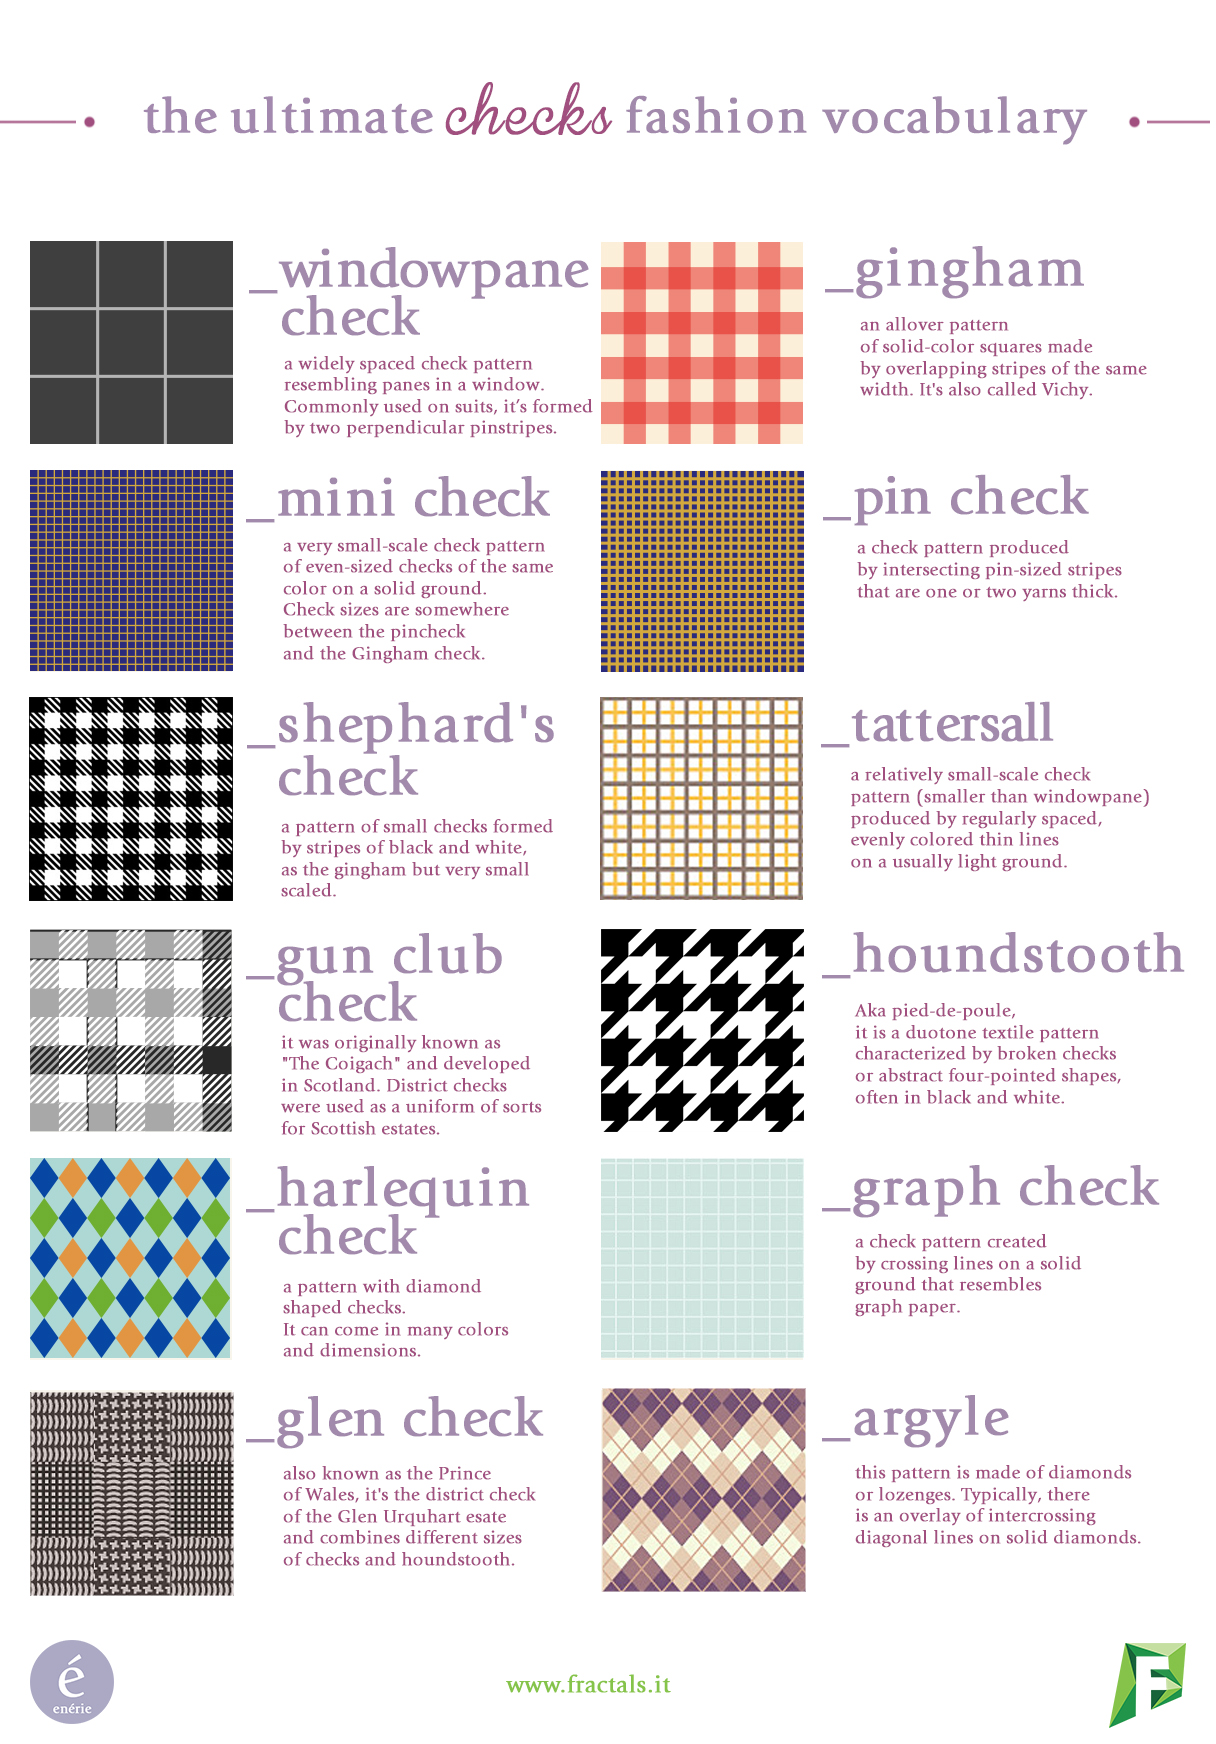 Fractals The Ultimate Checks Fashion Vocabulary